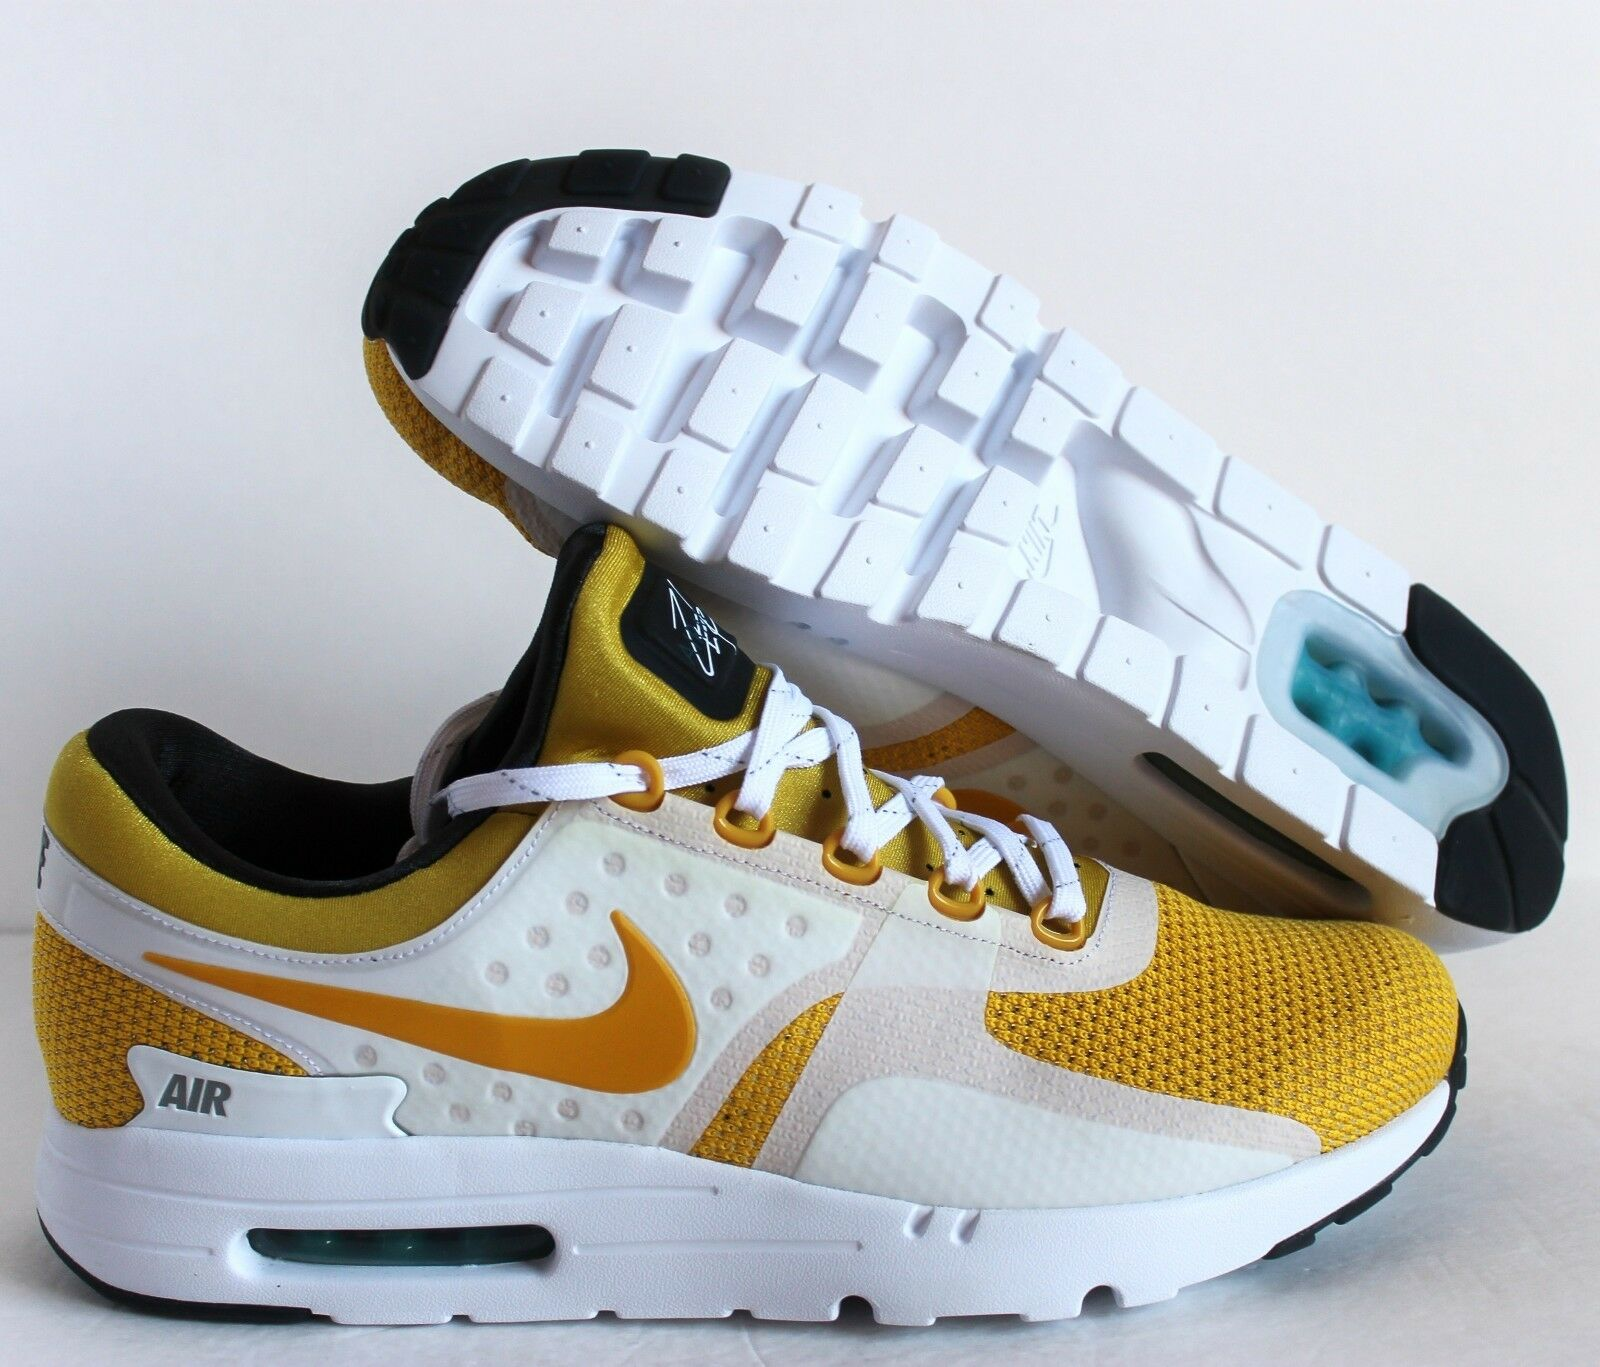 NIKE MEN AIR MAX ZERO QS WHITE-VIVID SULFUR YELLOW-ANTHRACITE Price reduction Brand discount